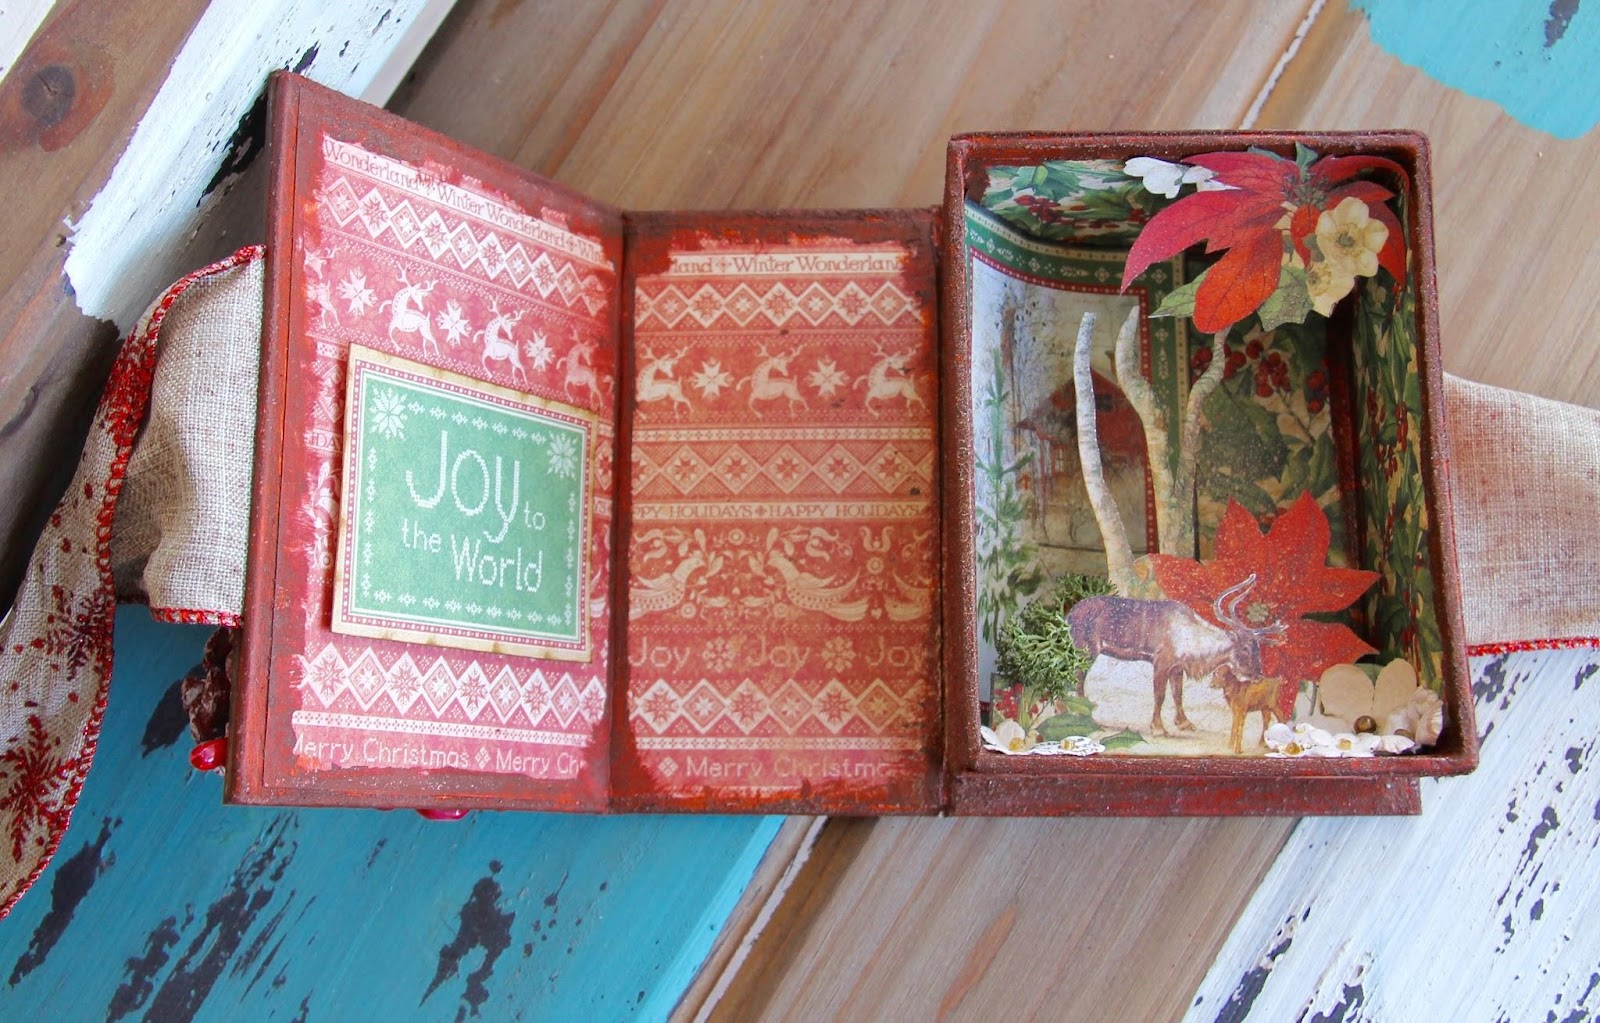 Winter Wonderland Book Box by Marina Blaukitchen Product by Graphic 45 photo 9.jpg